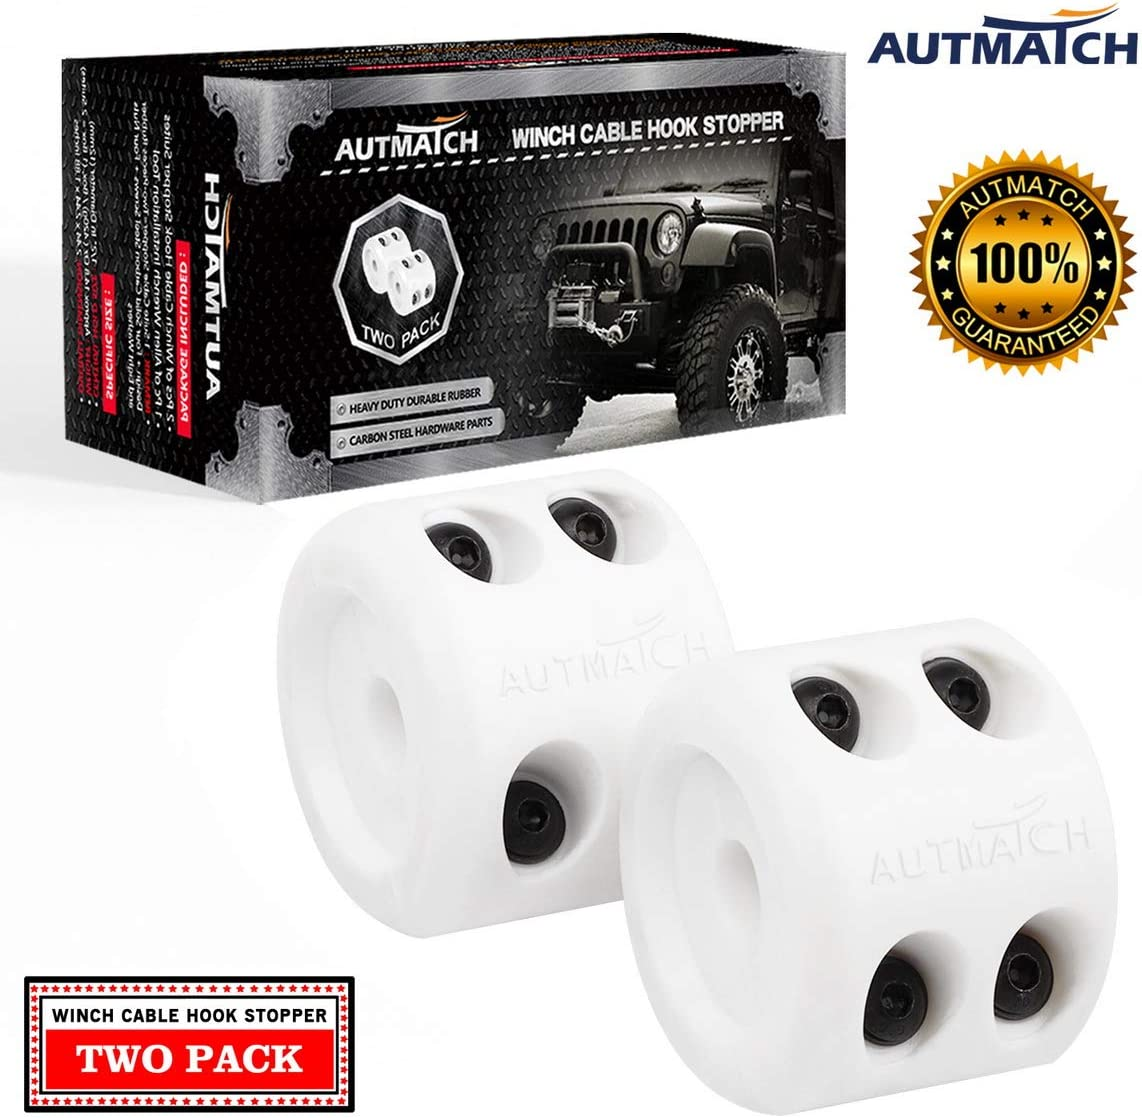 Silicone Rubber Shock Absorbent Winch Stopper Best Winch Accessories for Wire /& Synthetic Cables ATV UTV Prevent Pulling Eliminate Abrasion Bouncing Black Autmatch Winch Cable Hook Stopper 2 Pack